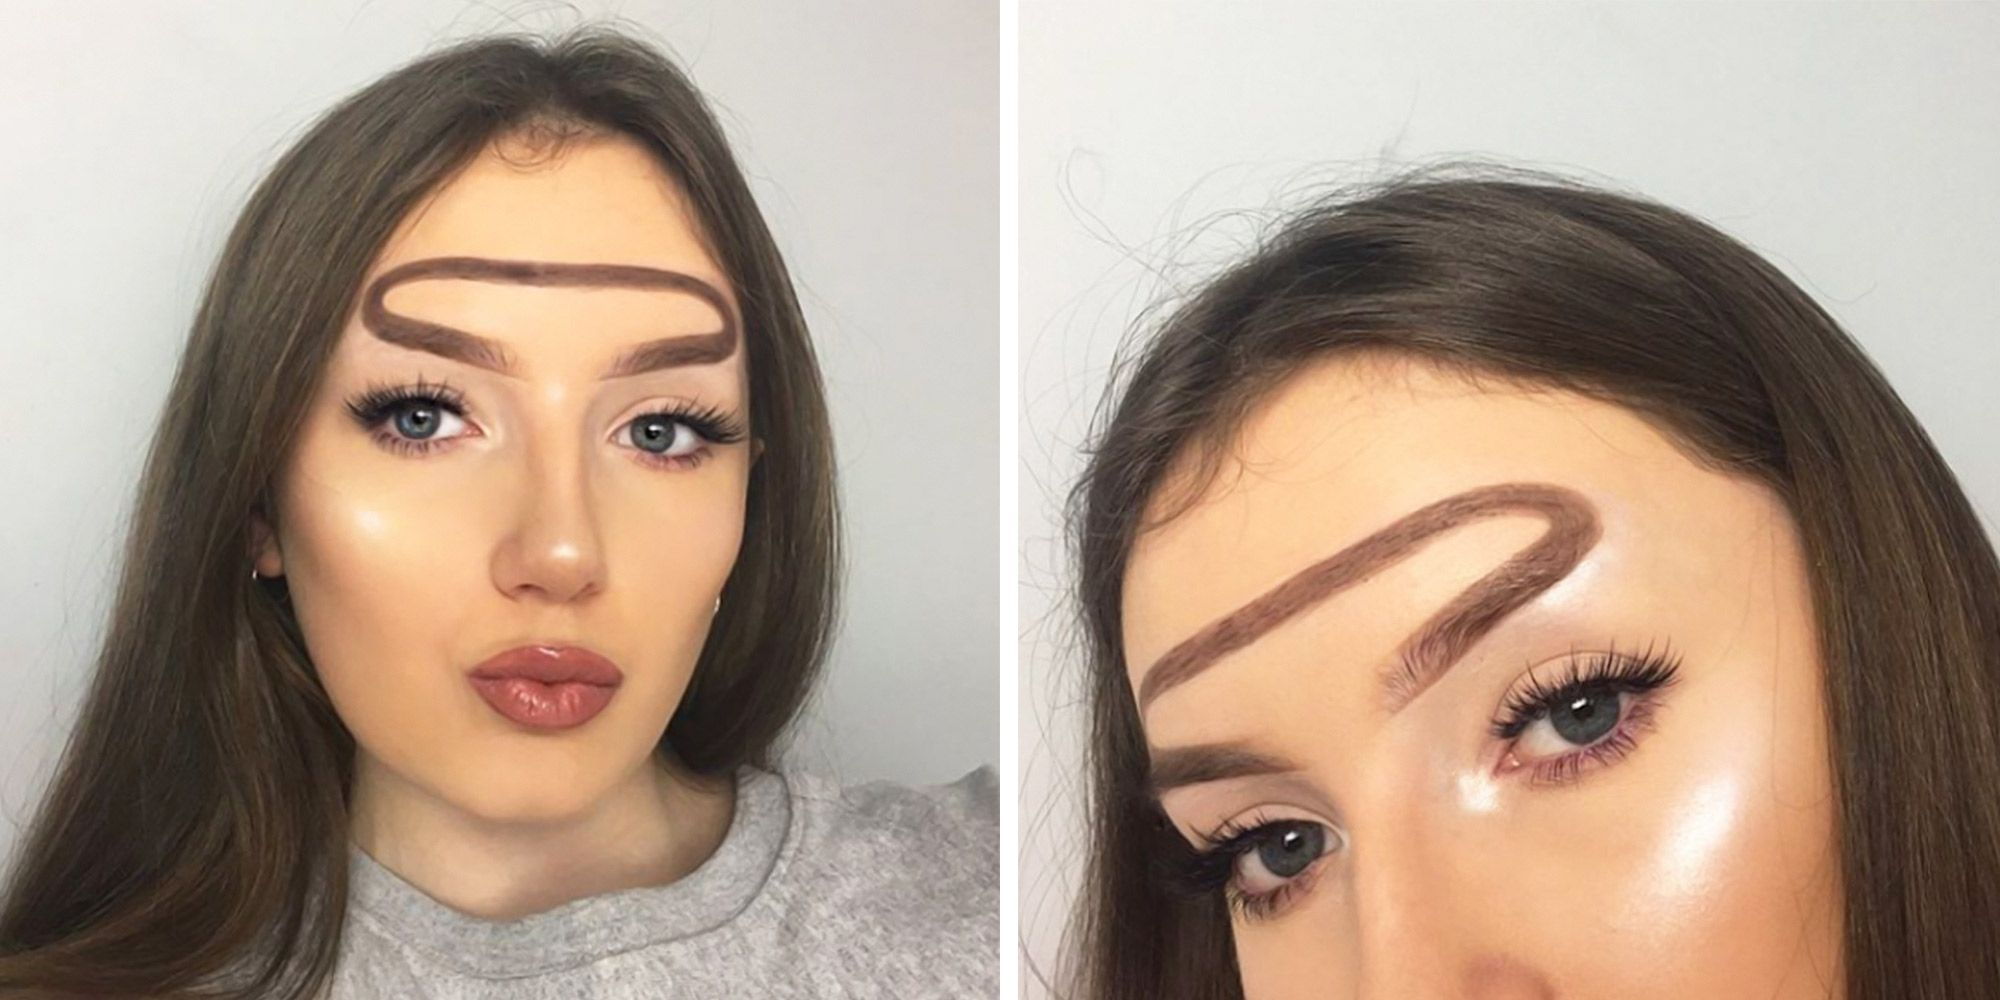 Halo Brows Are Trying To Be The Next Instagram Brow Trend